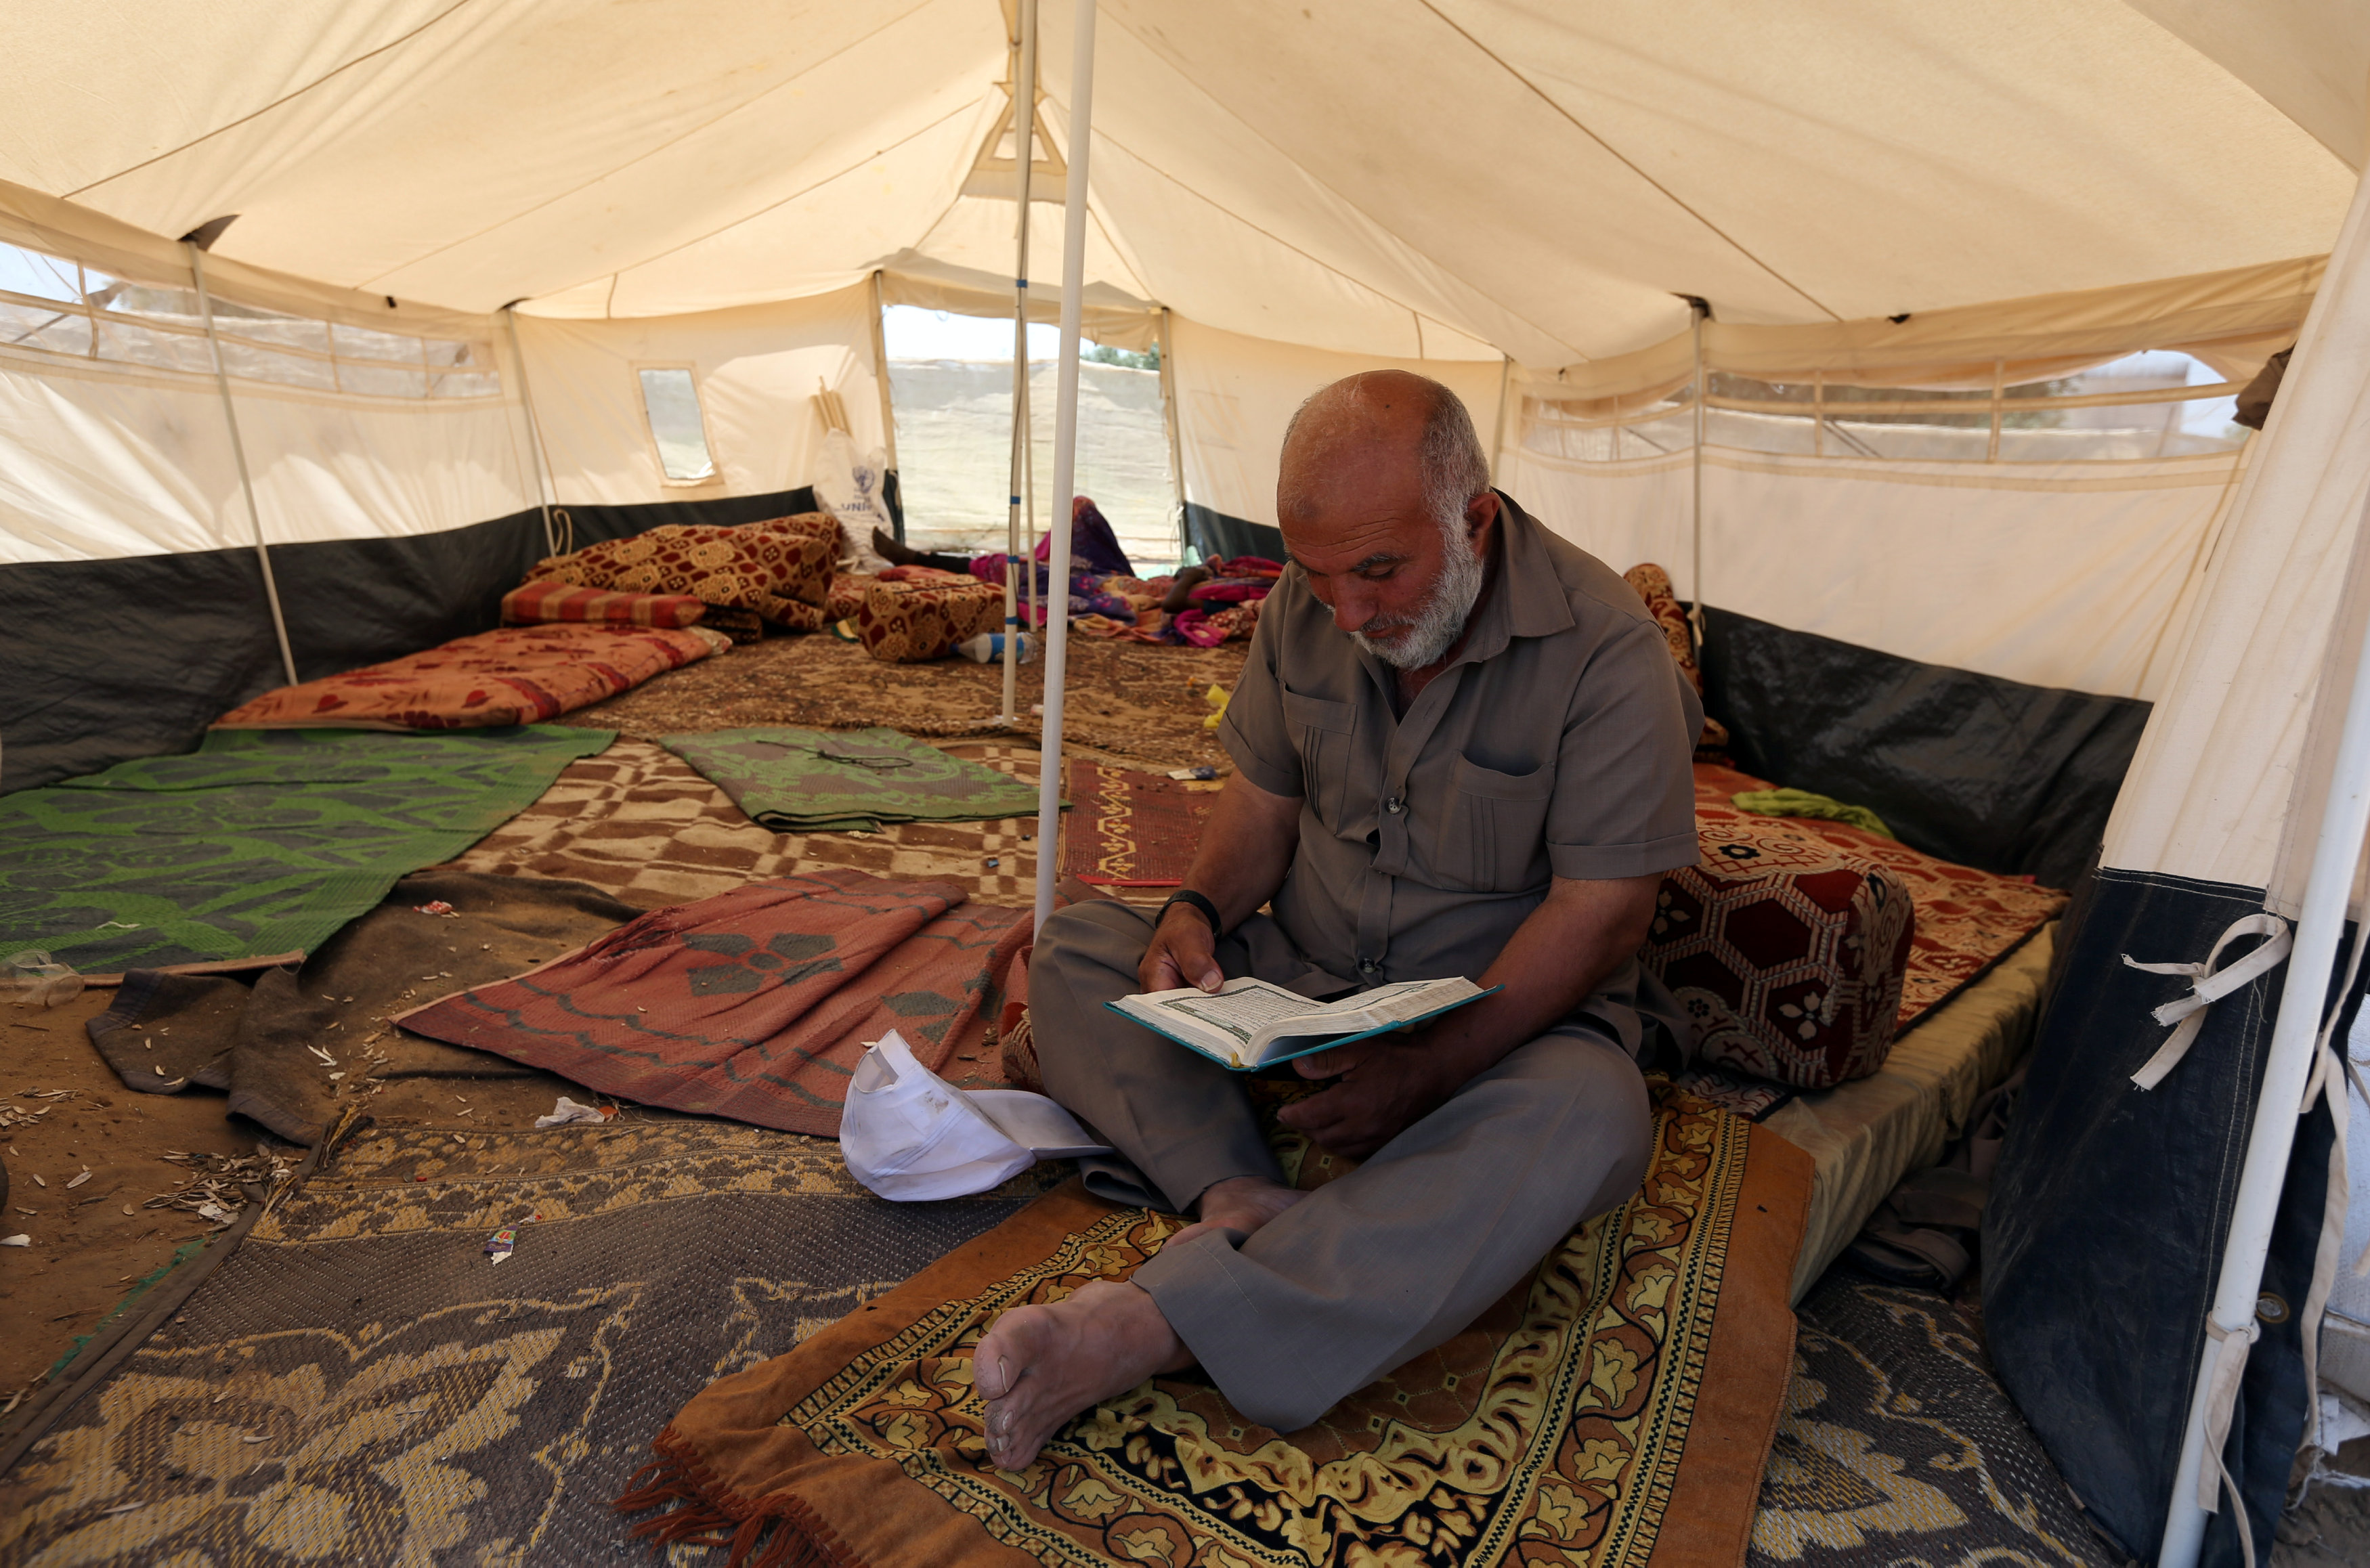 A Palestinian man reads the Koran inside a tent during the holy month of Ramadan, at a protest camp near the Israel-Gaza border in the central Gaza Strip May 17, 2018. REUTERS/Ibraheem Abu Mustafa